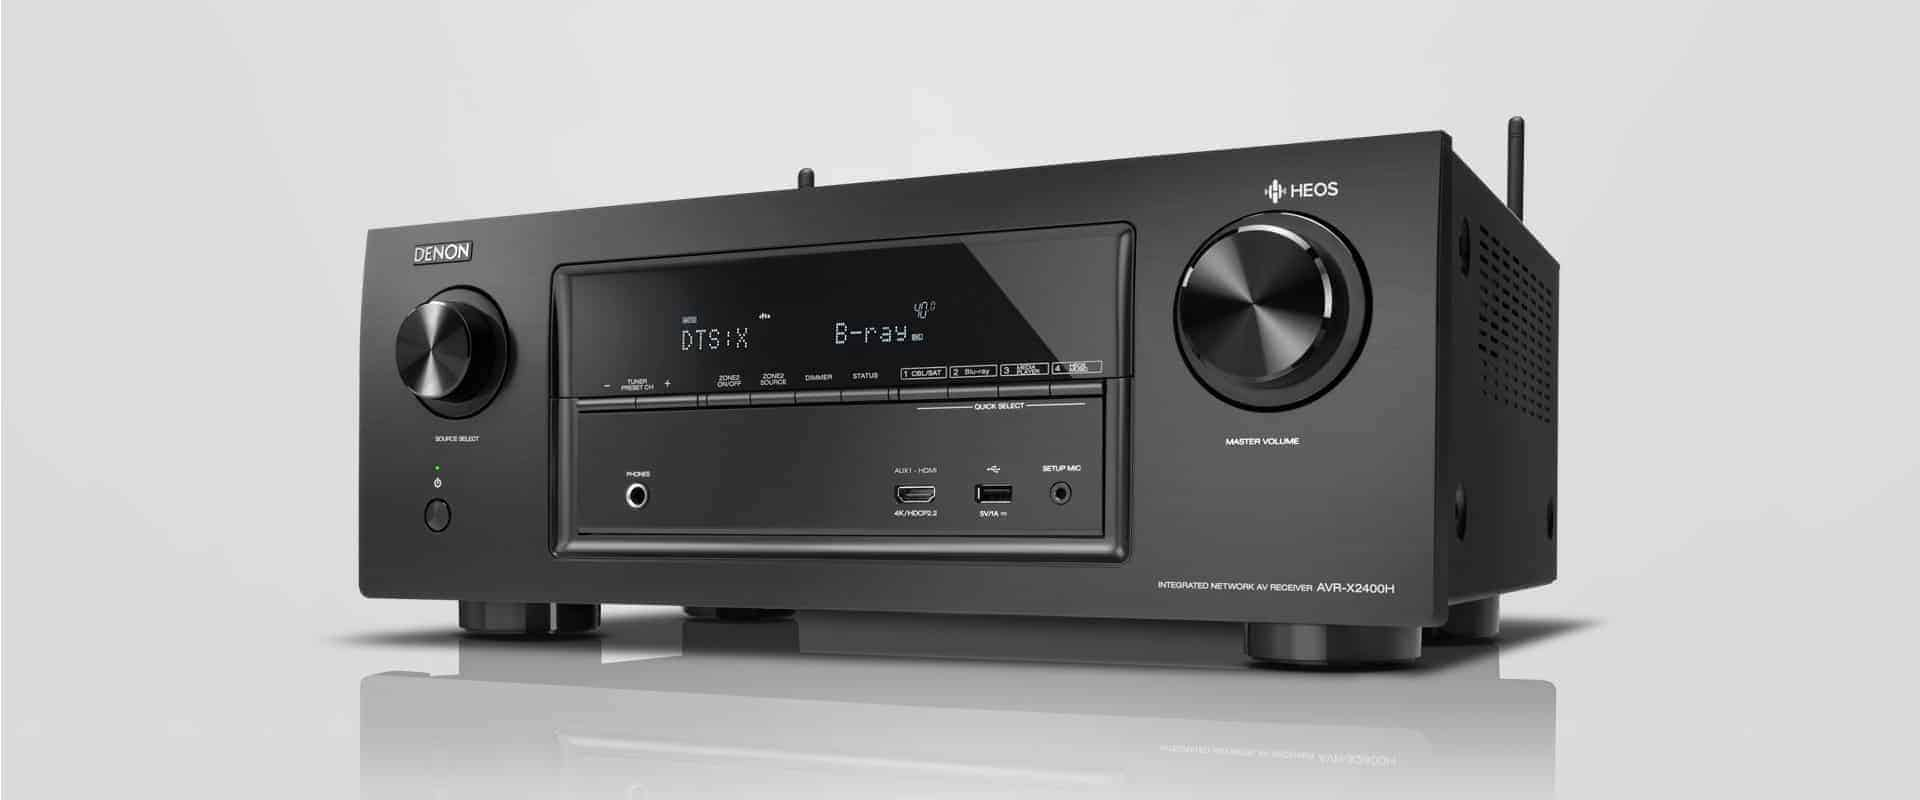 Denon AVR-X2400H 7.2-Kanal-AV-Surround-Receiver